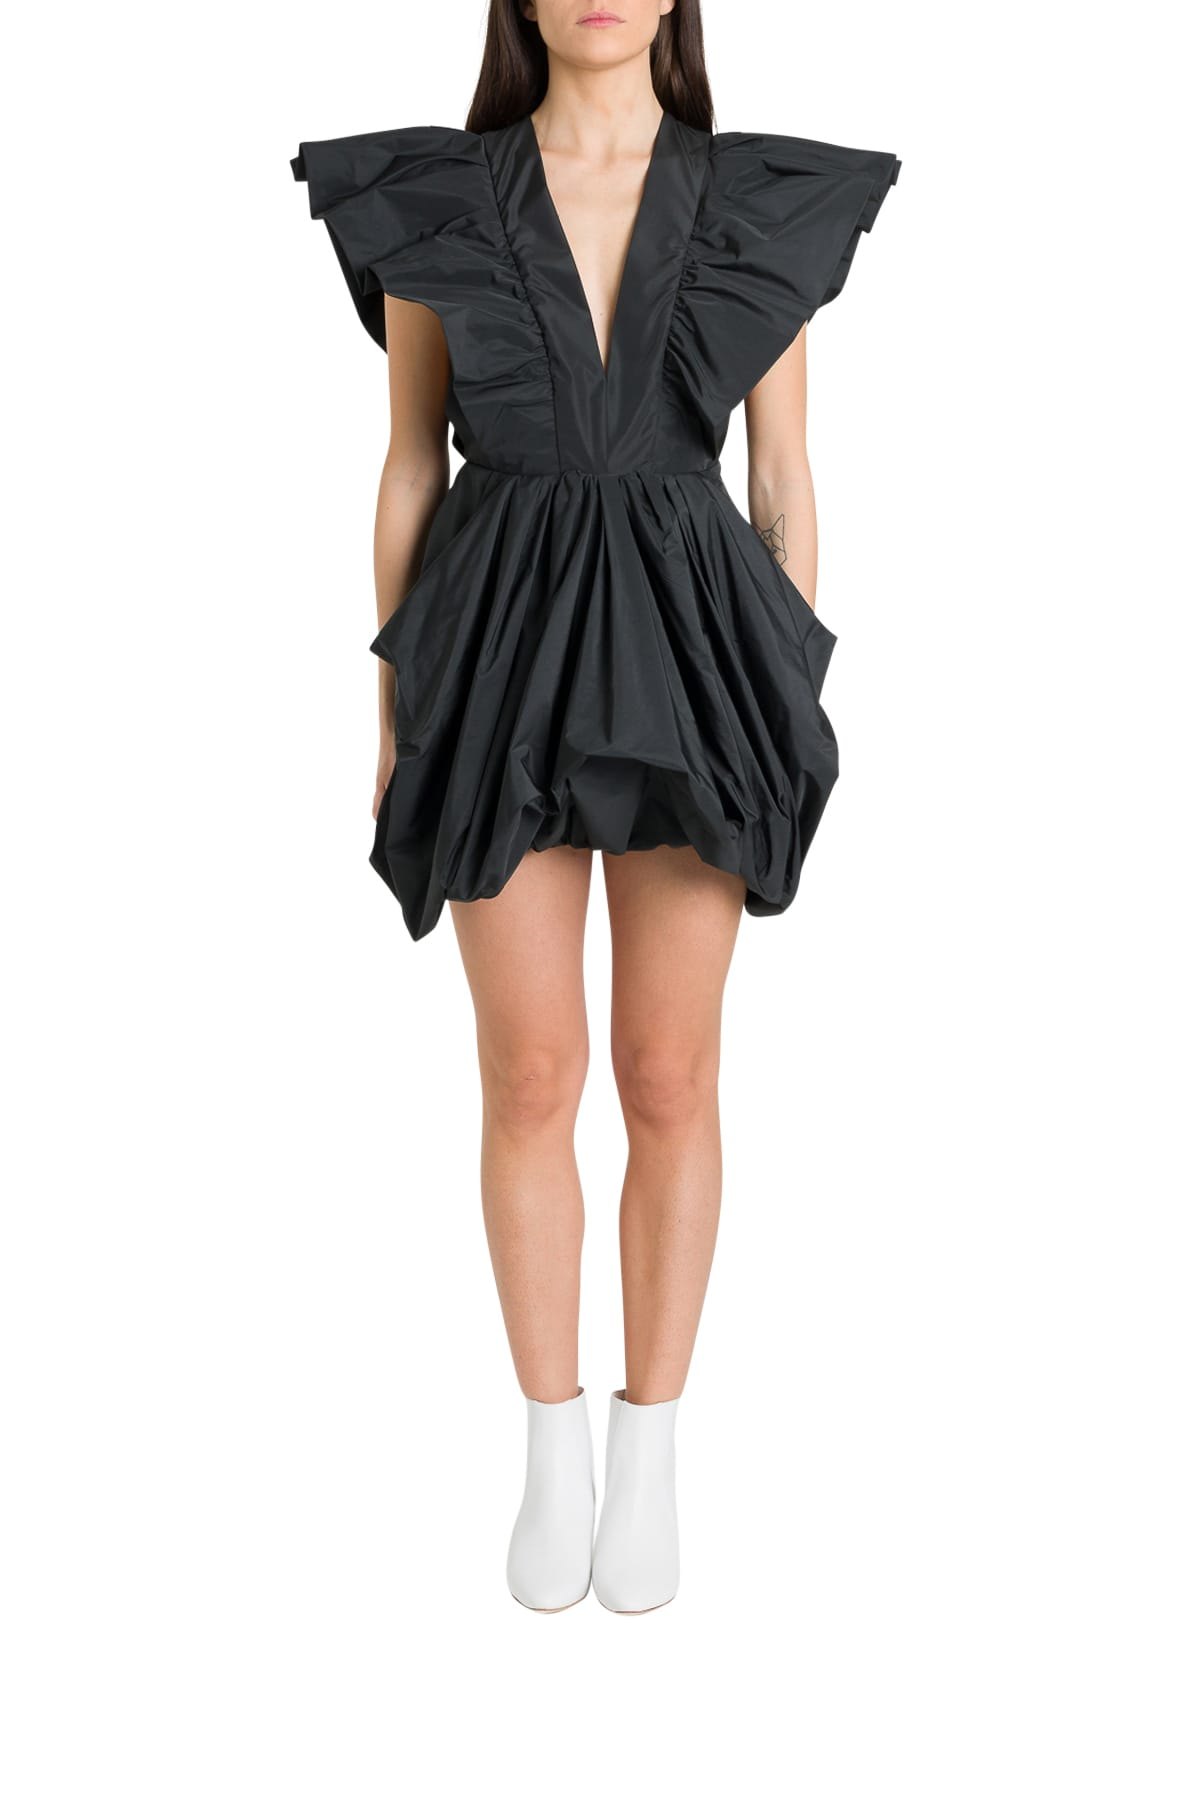 Buy Philosophy di Lorenzo Serafini Butterfly Mini Dress online, shop Philosophy di Lorenzo Serafini with free shipping